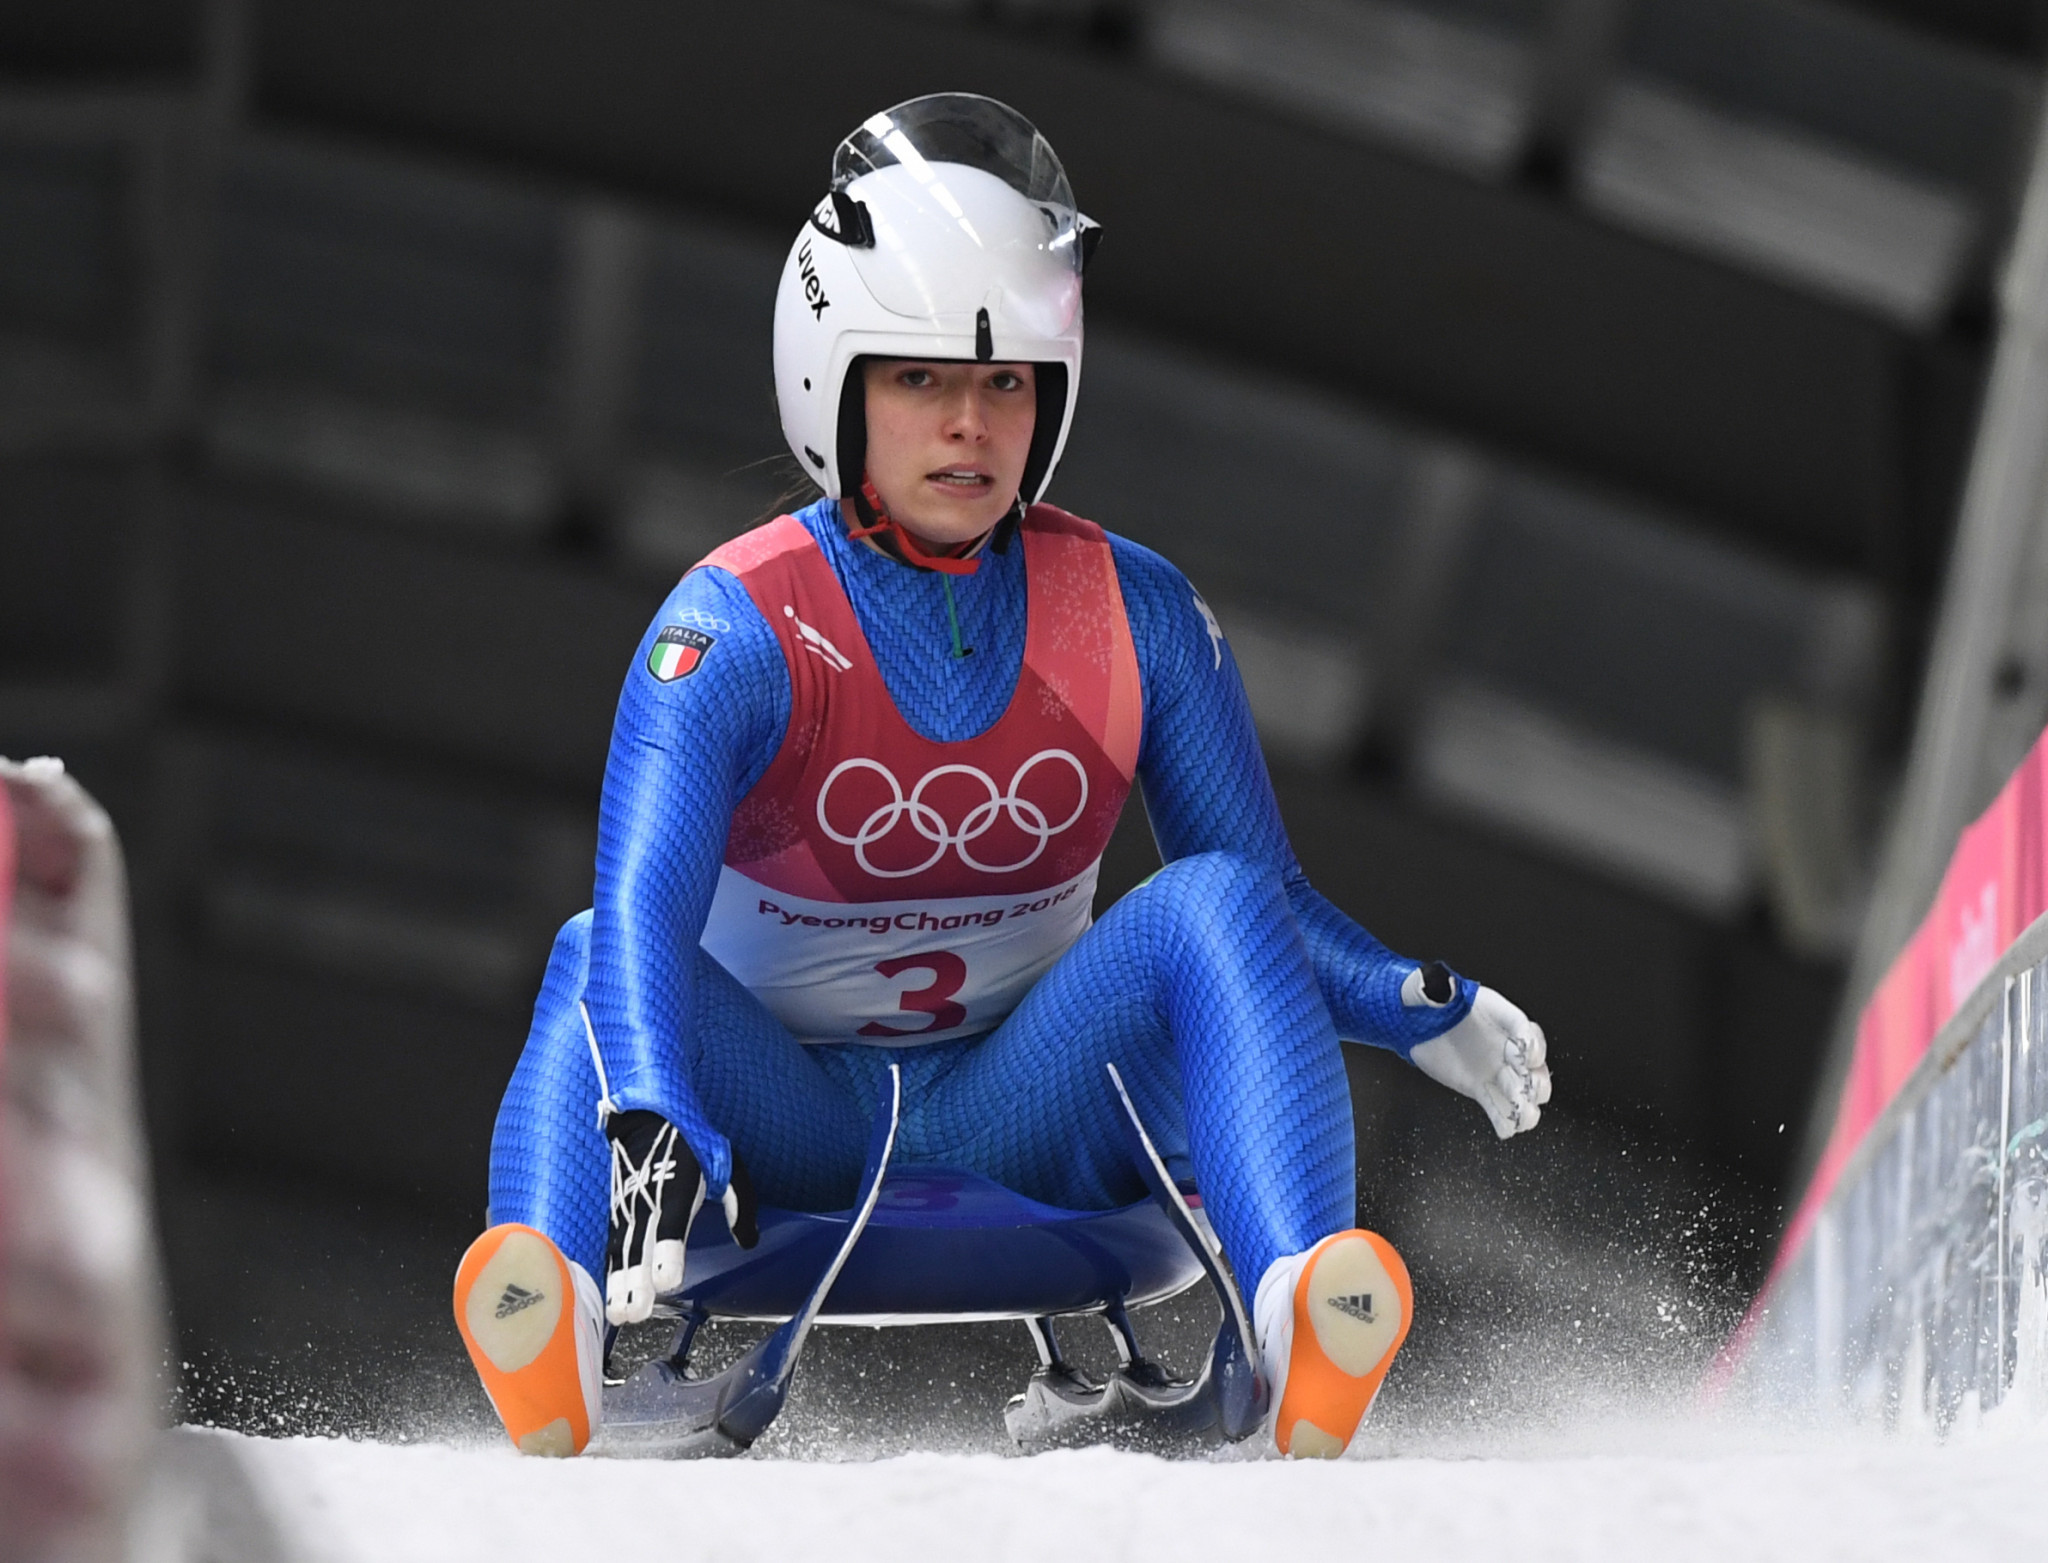 Sandra Robatscher competed at the Sochi 2014and Pyeongchang 2018 Winter Olympics ©Getty Images